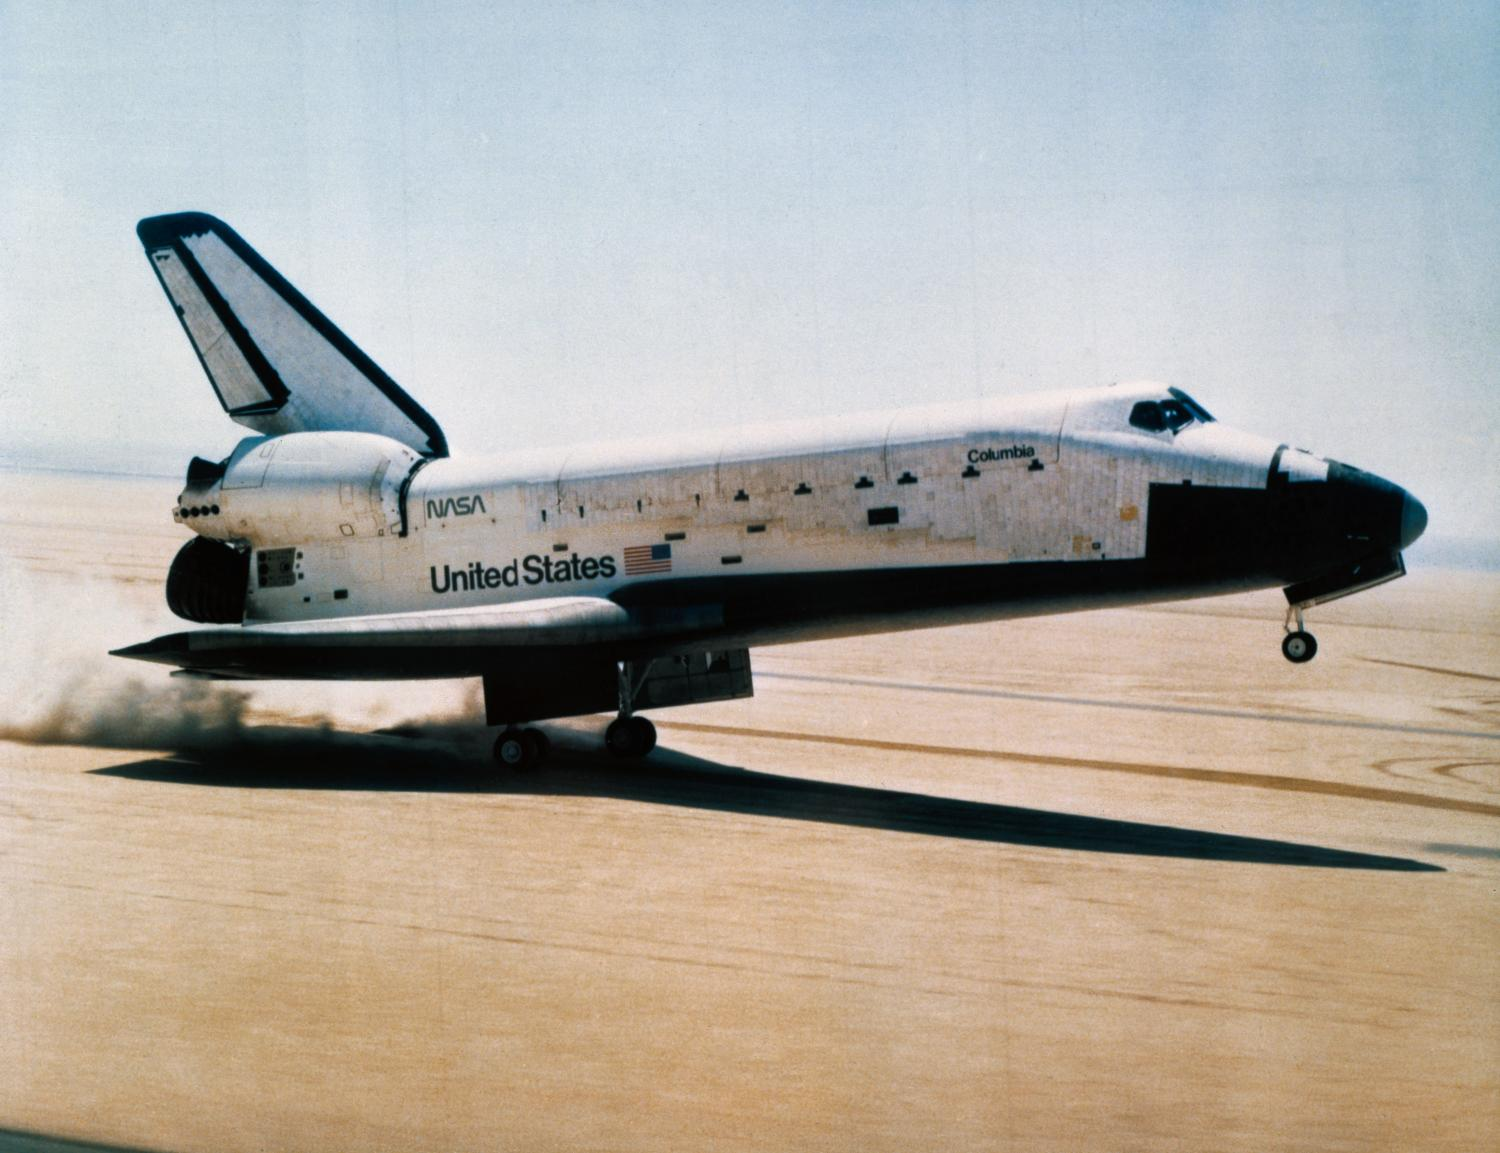 space shuttle landing at edwards air force base - photo #31